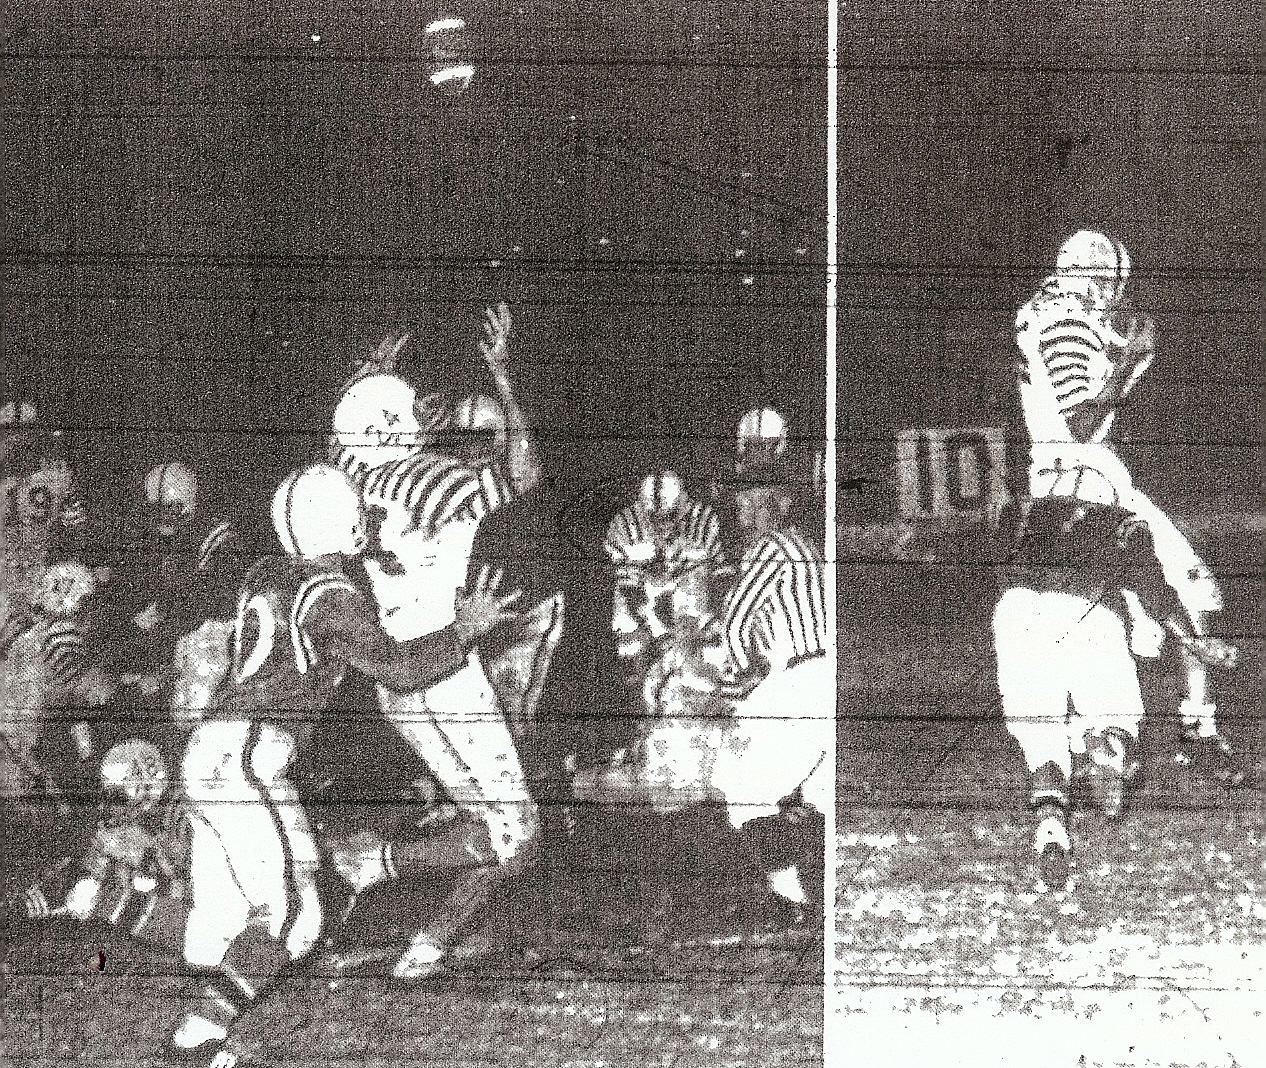 Steve Reiona (right photo) gets behind Escondido's Jerry Montiel to score touchdown near end of first half. Touchdown was redemption for Reina (24). Pass (left) pjoto bounced off Reina's shoulder and went high in the air, intecepted on Escondido's five-yard line by Gordon Calac, not pictured.